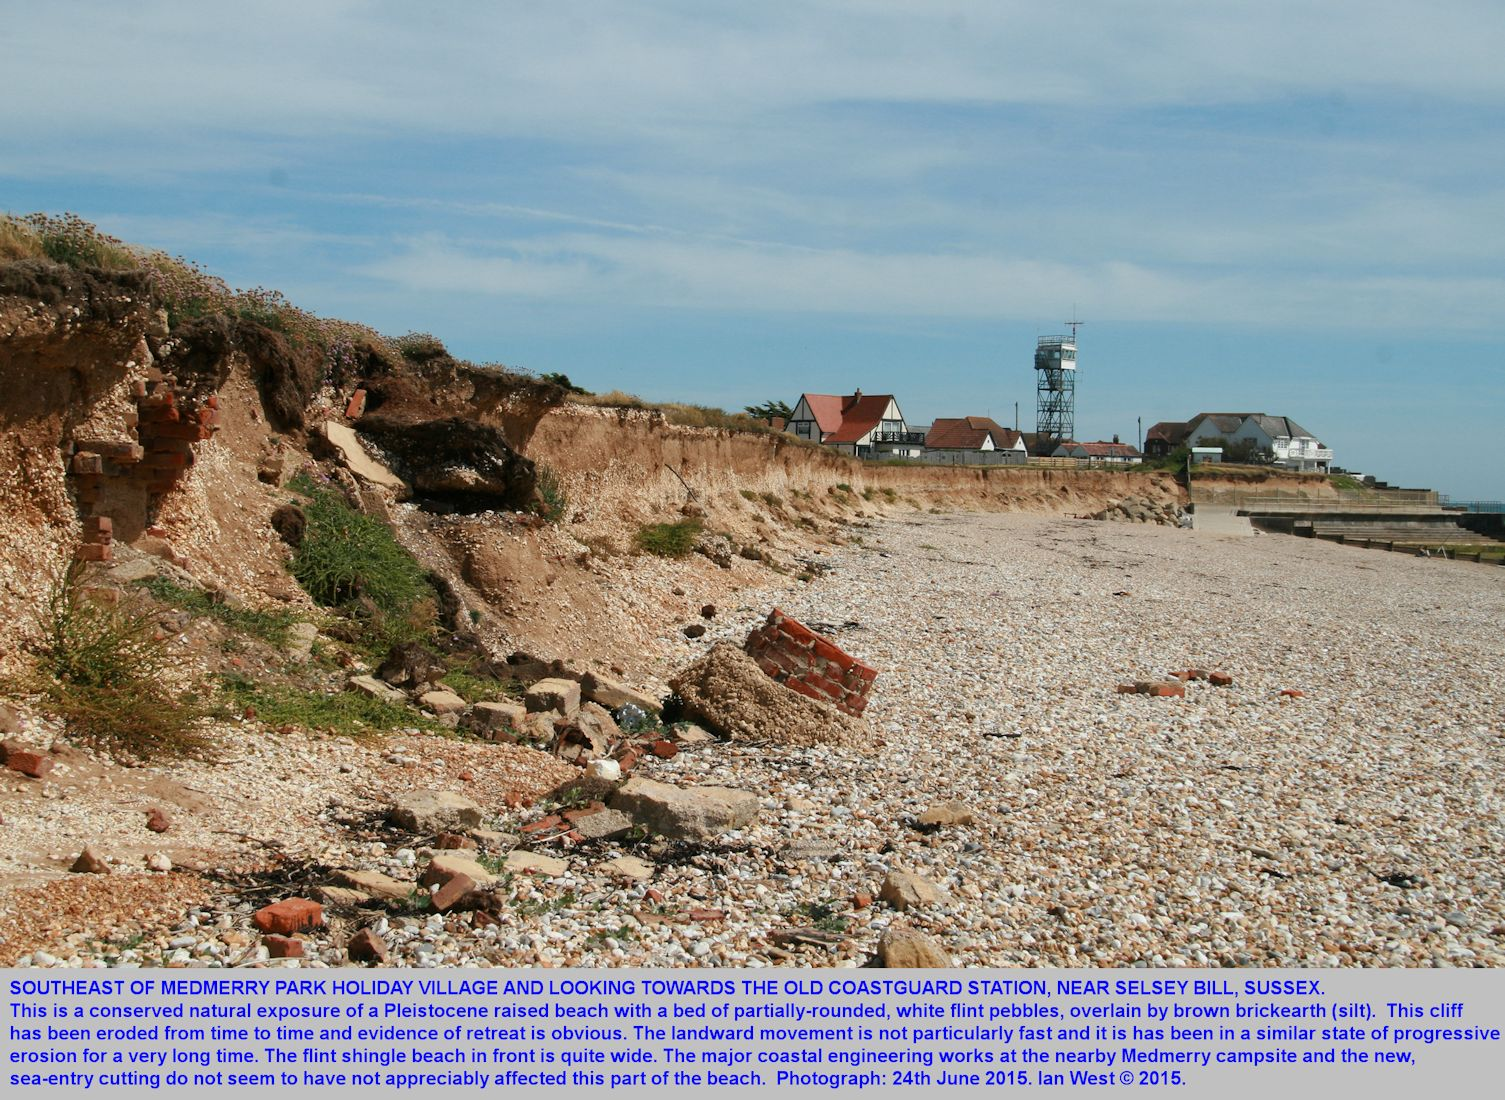 The raised beach cliff, southeast of Medmerry Park area and towards the old coastguard lookout, Bracklesham Bay, Sussex, 24th June 2015